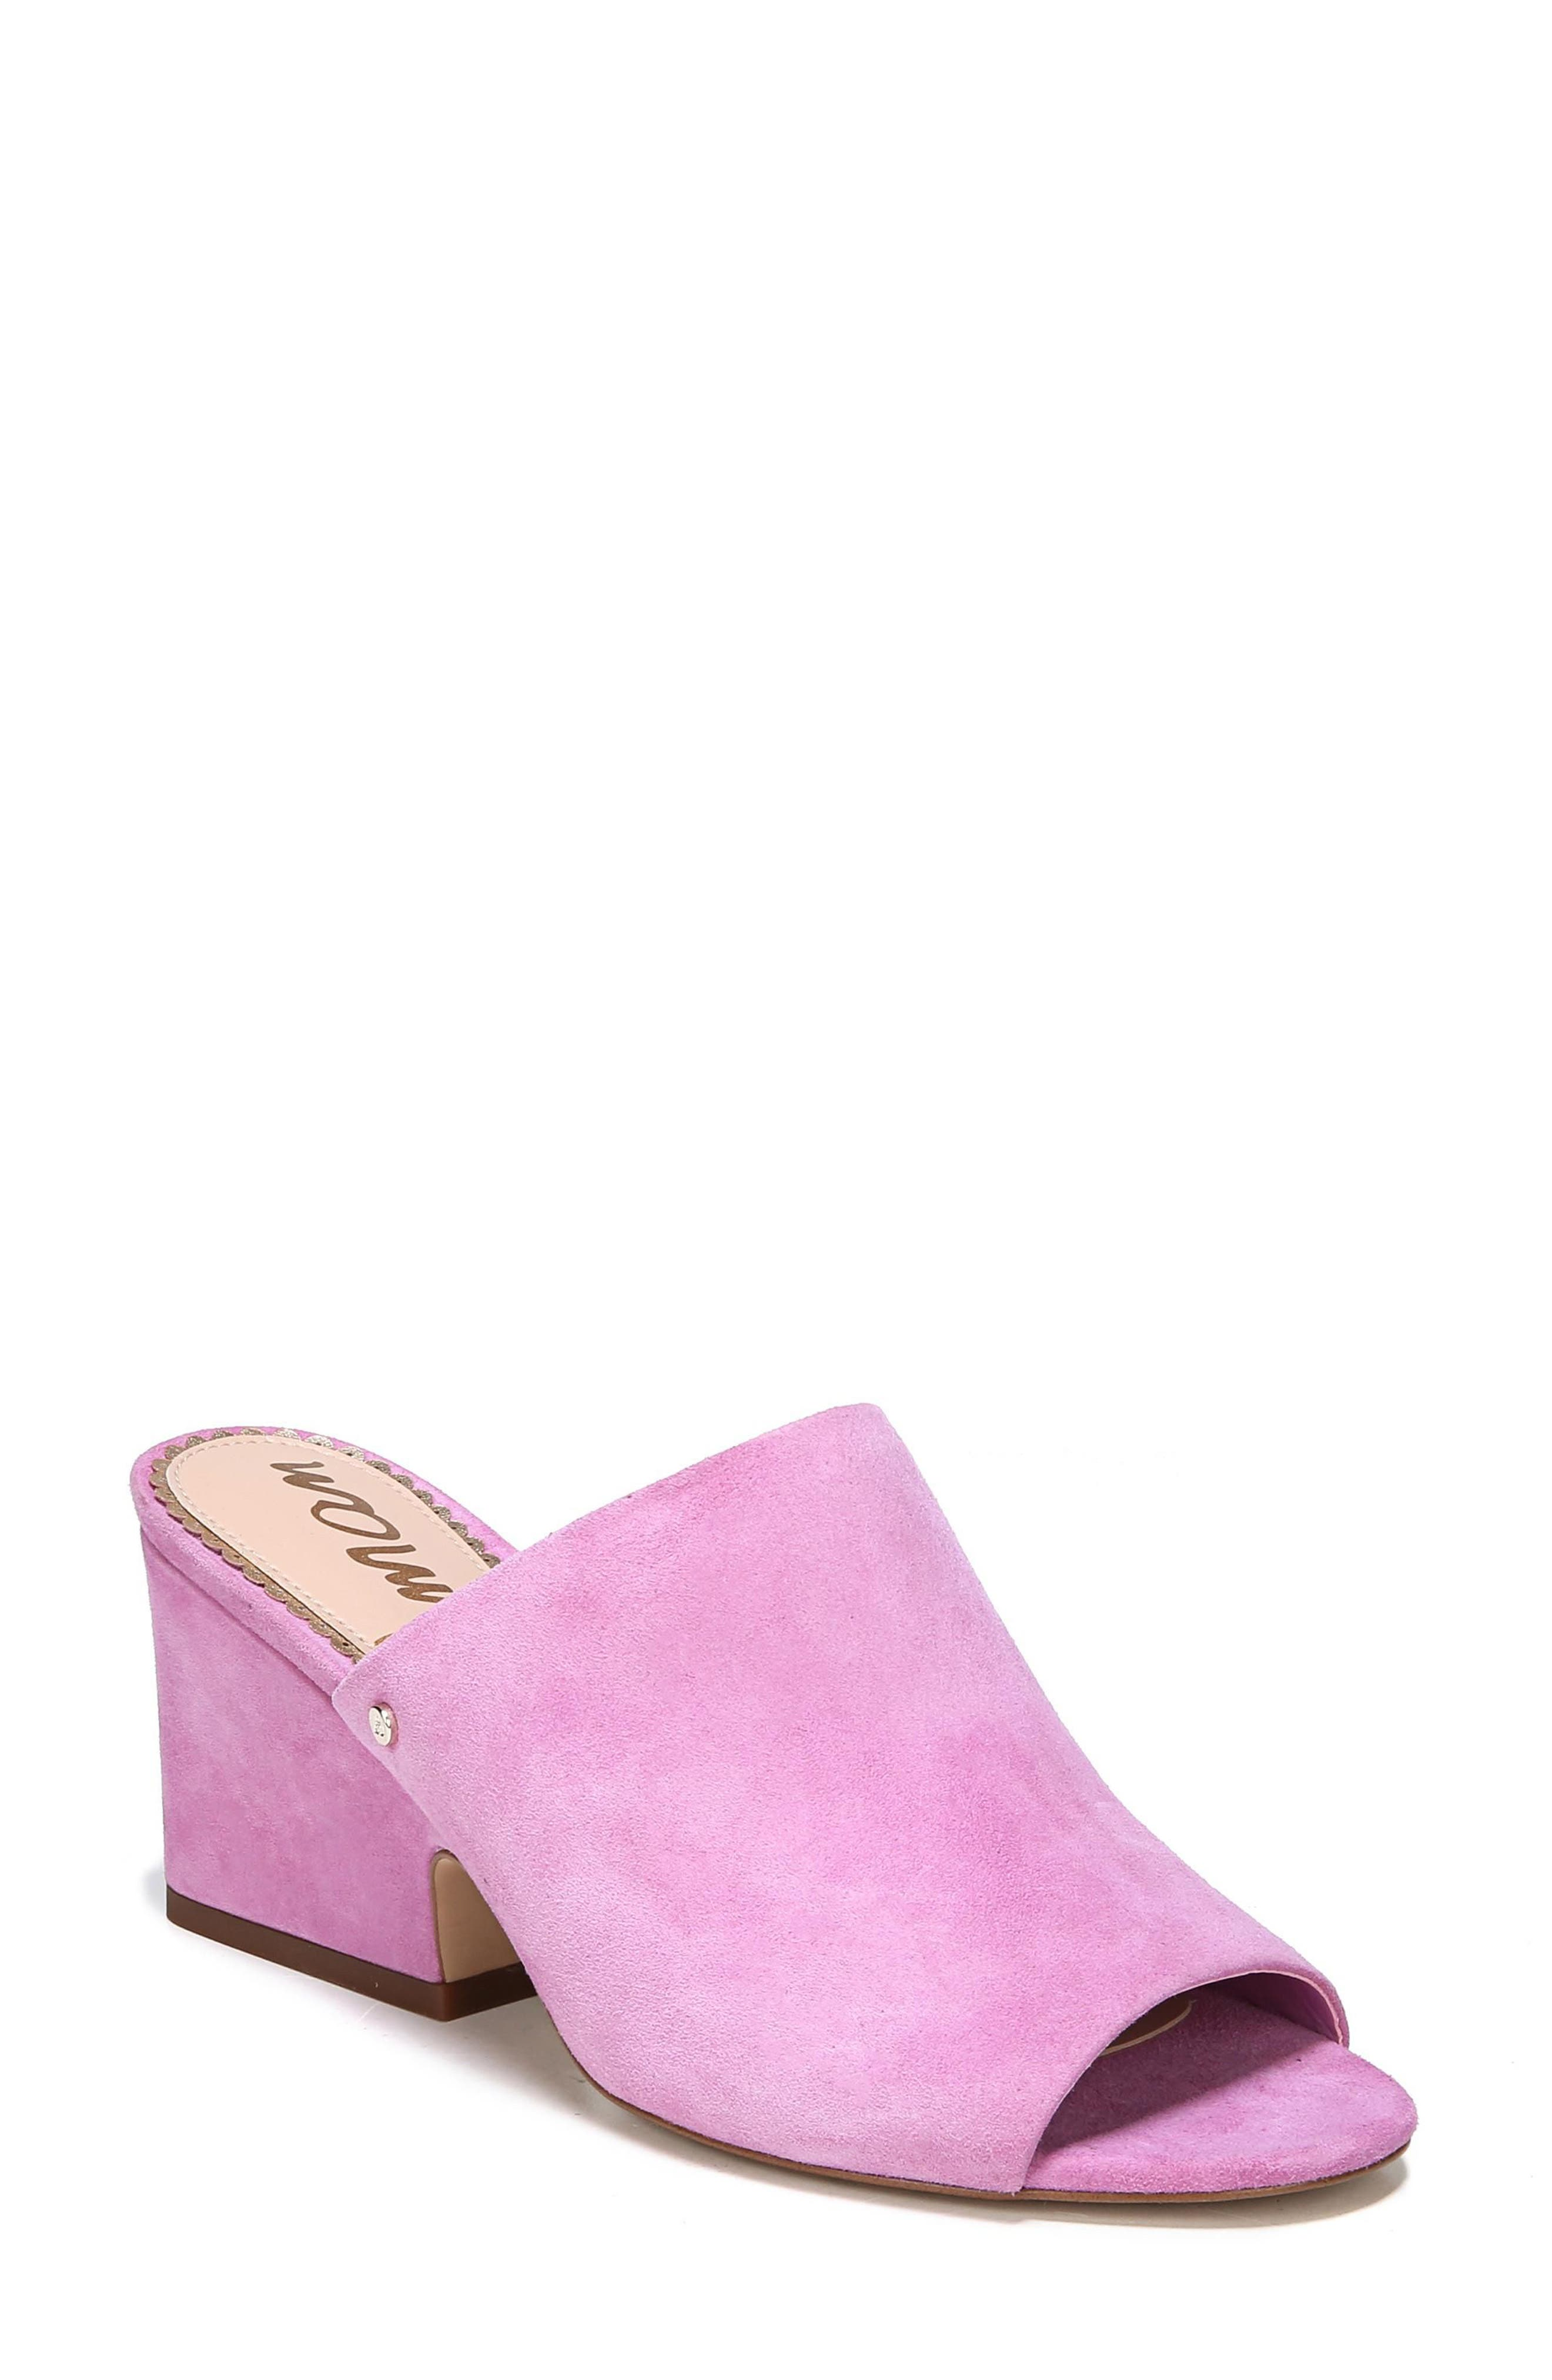 Rheta Mule,                         Main,                         color, Fiji Pink Suede